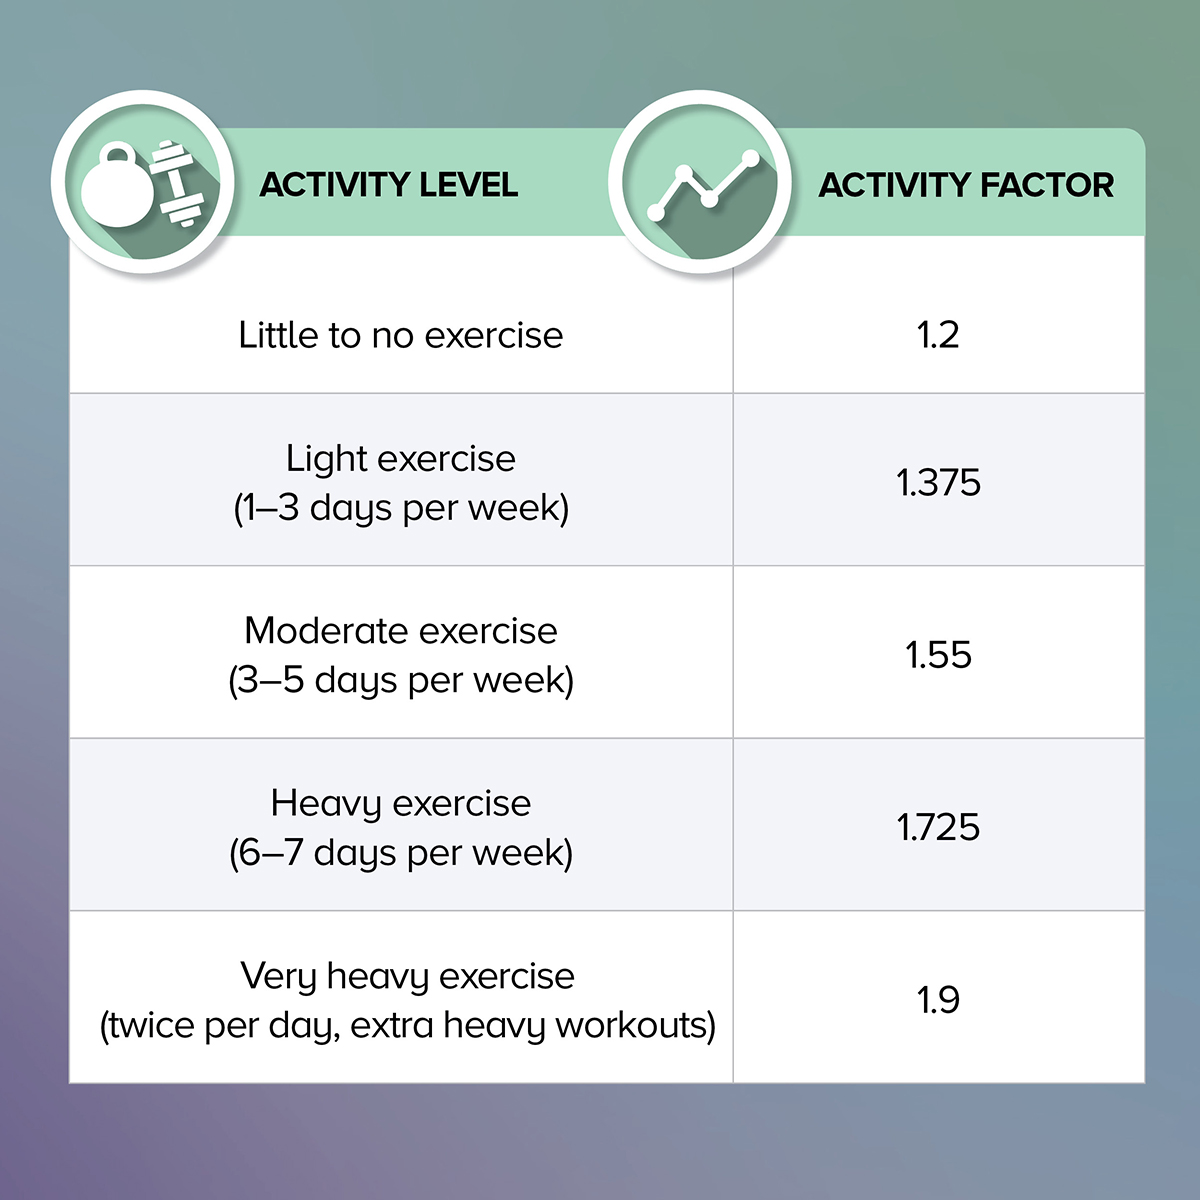 Activity Factor and Activity Level chart